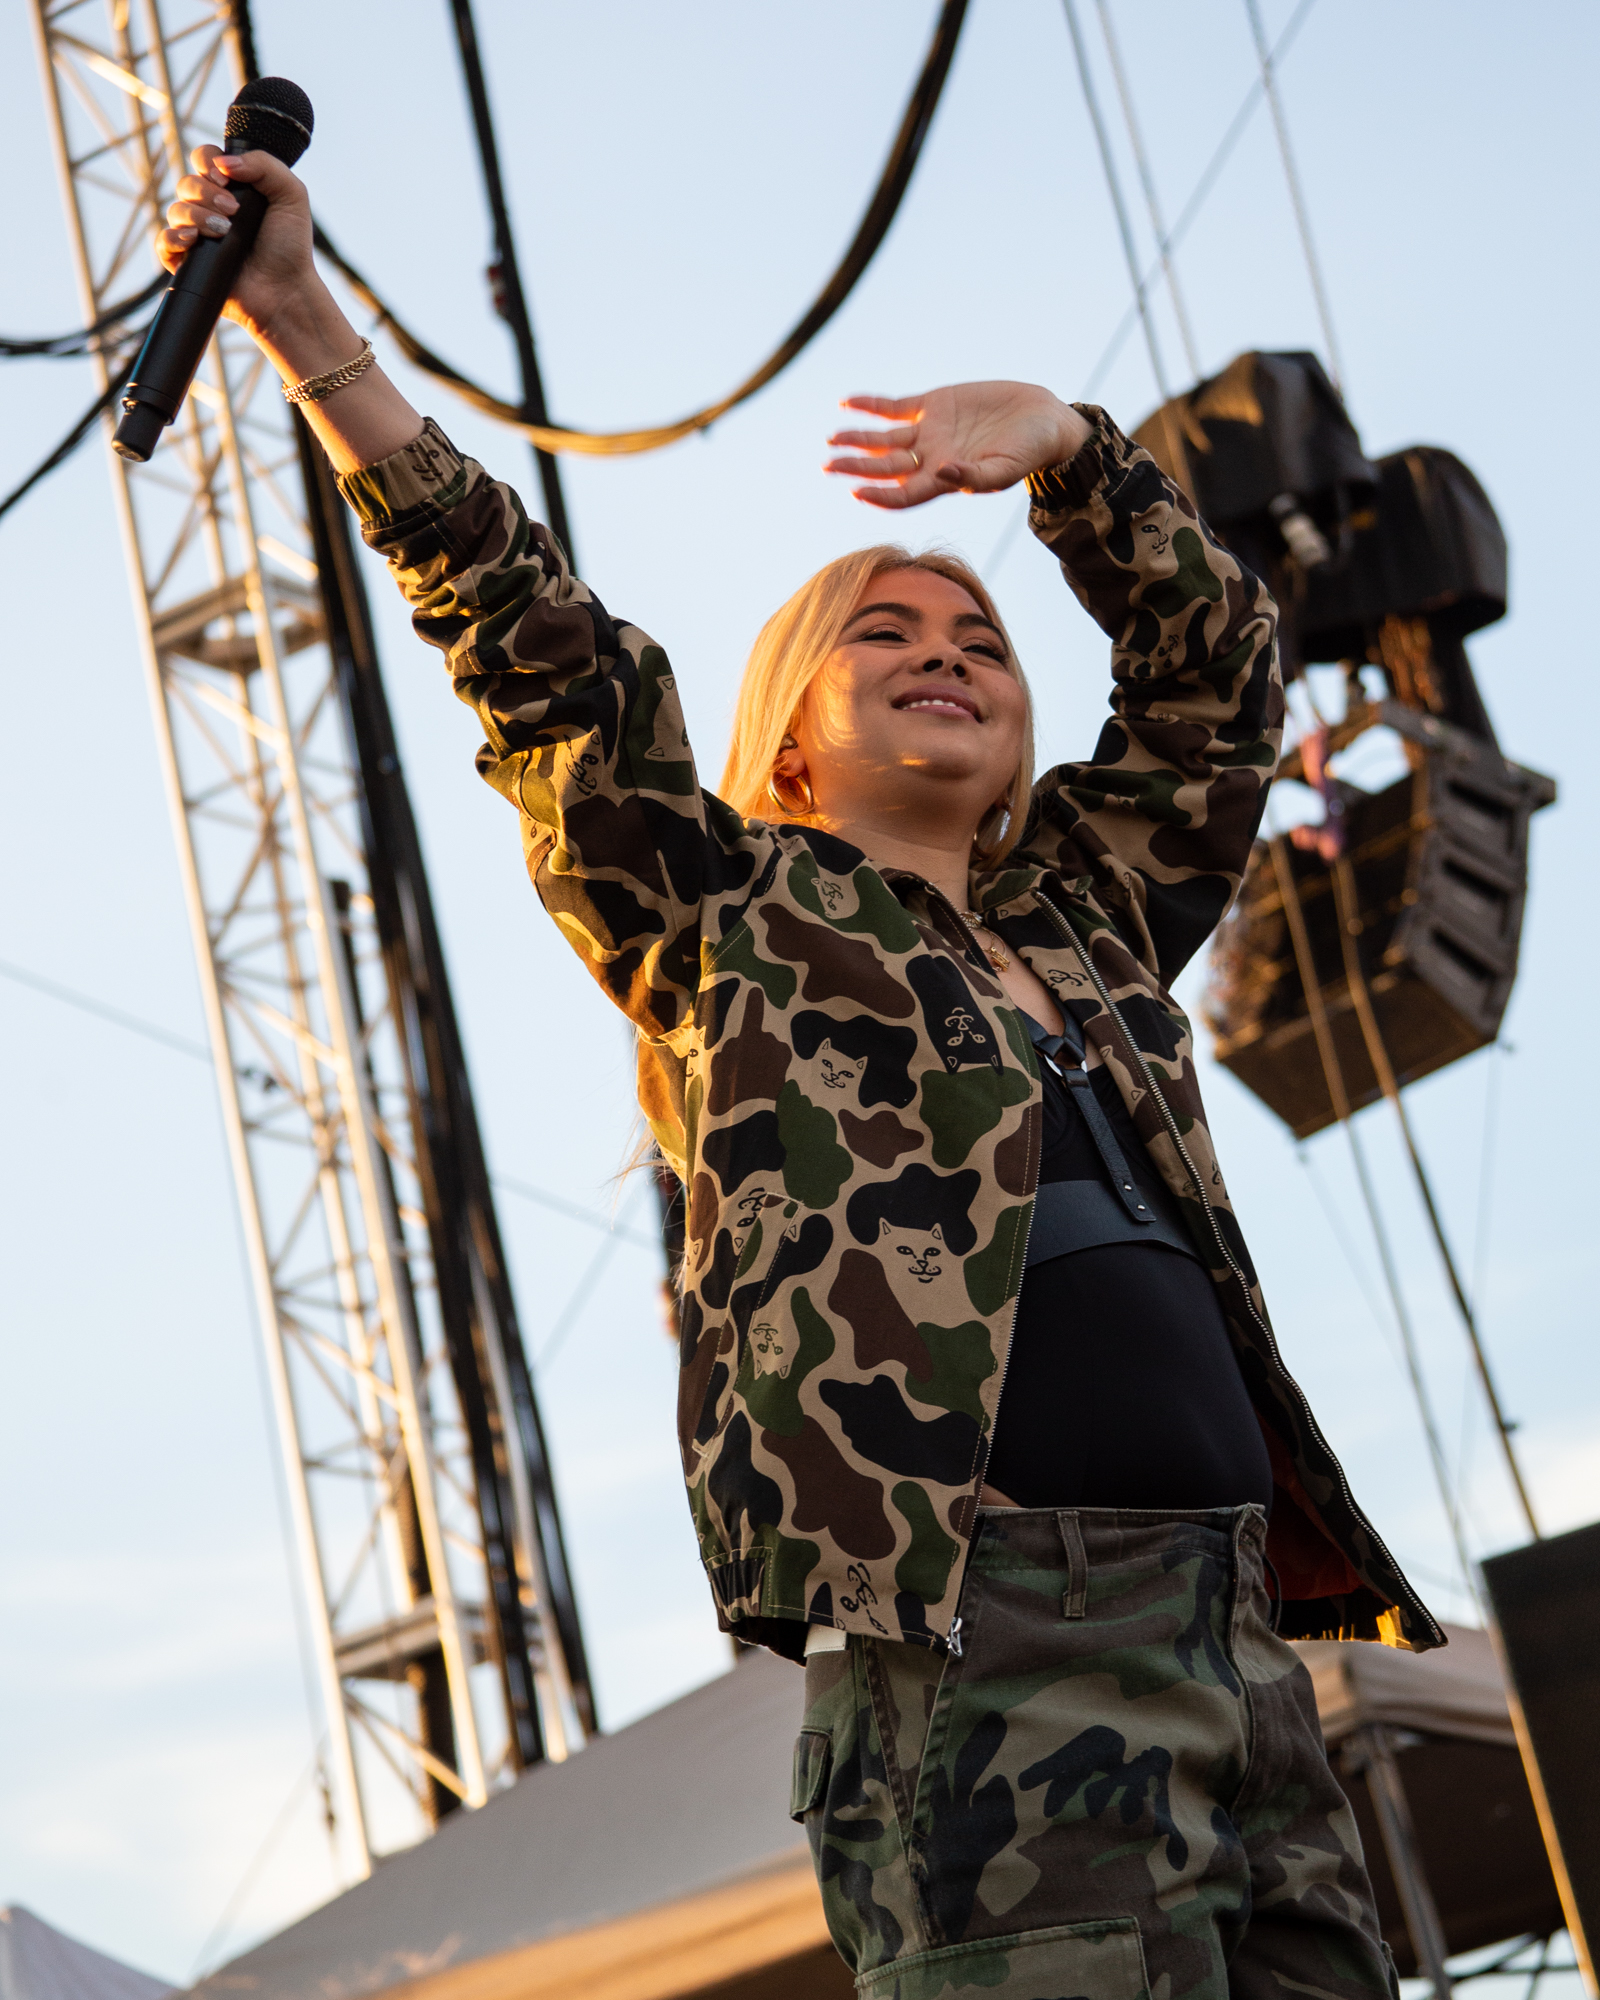 Hayley Kiyoko performs at Shadow of the City festival in Asbury Park, NJ on August 25, 2018.